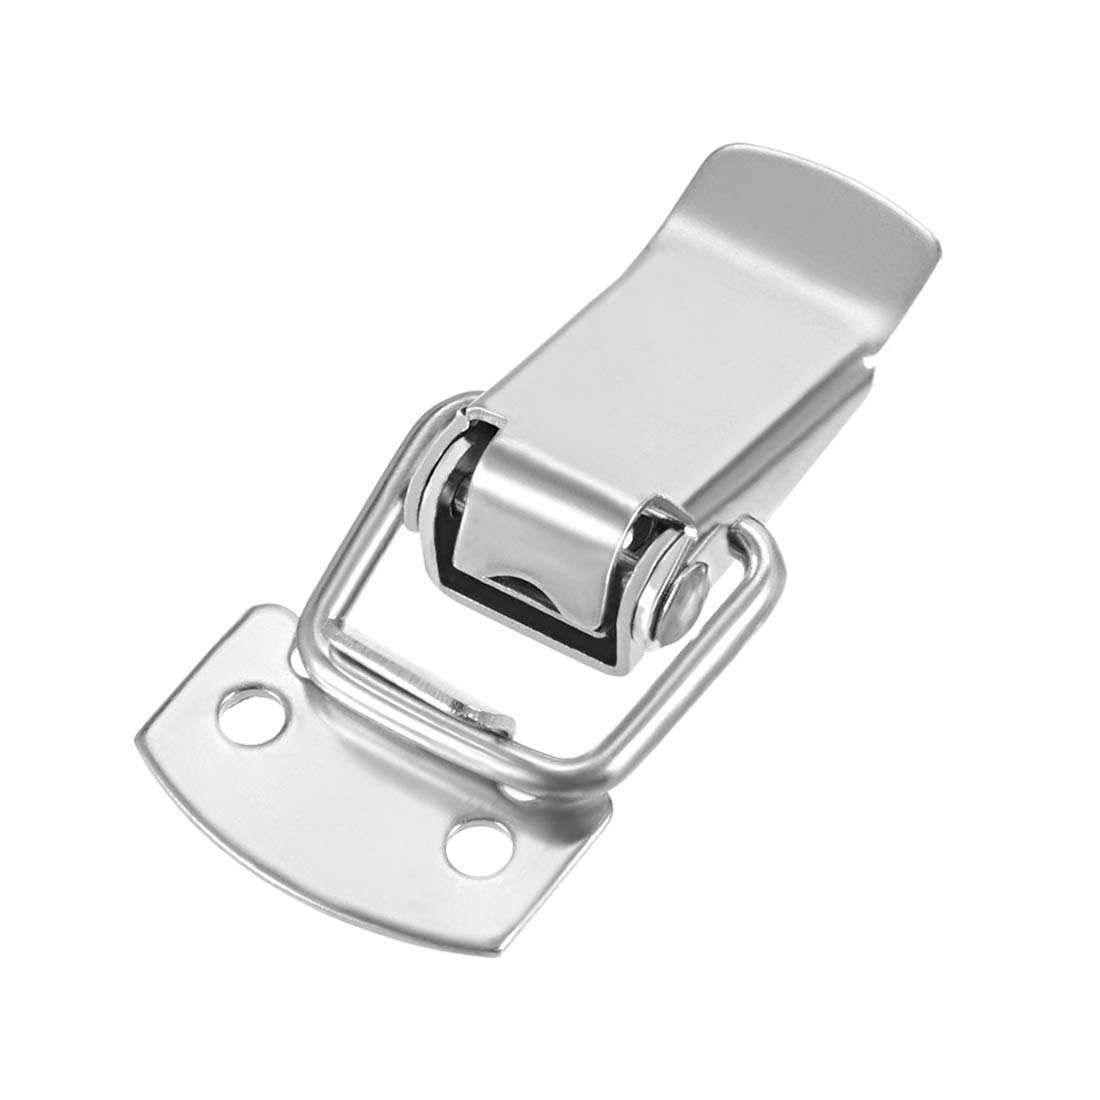 3-inch 201 Stainless Steel Spring Loaded Toggle Latch Catch for Box Chest Trunk